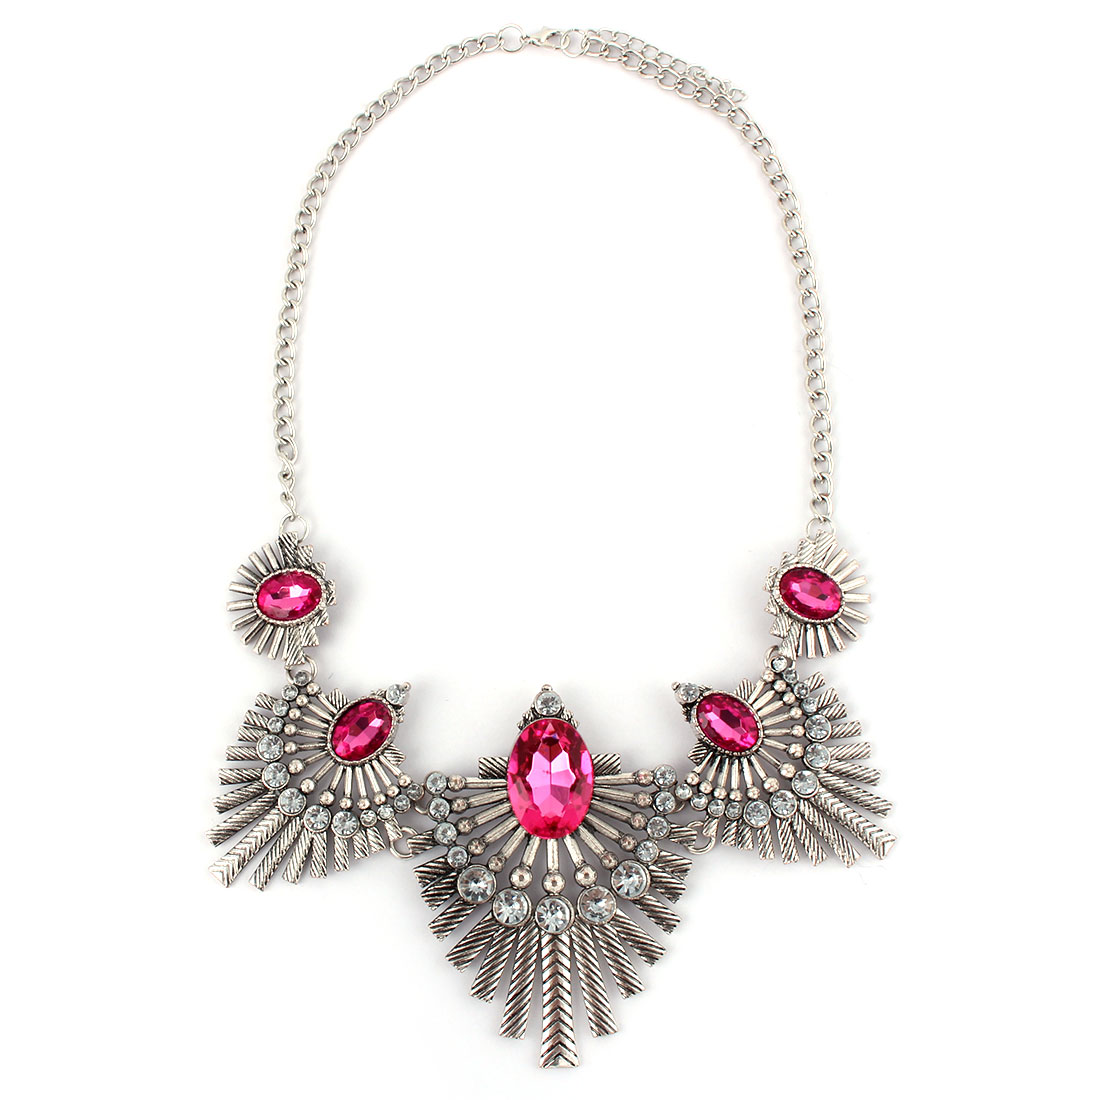 Women Metal Leaf Design Faux Rhinestone Inlaid Pendant Bib Collar Charming Choker Necklace Purple Silver Tone